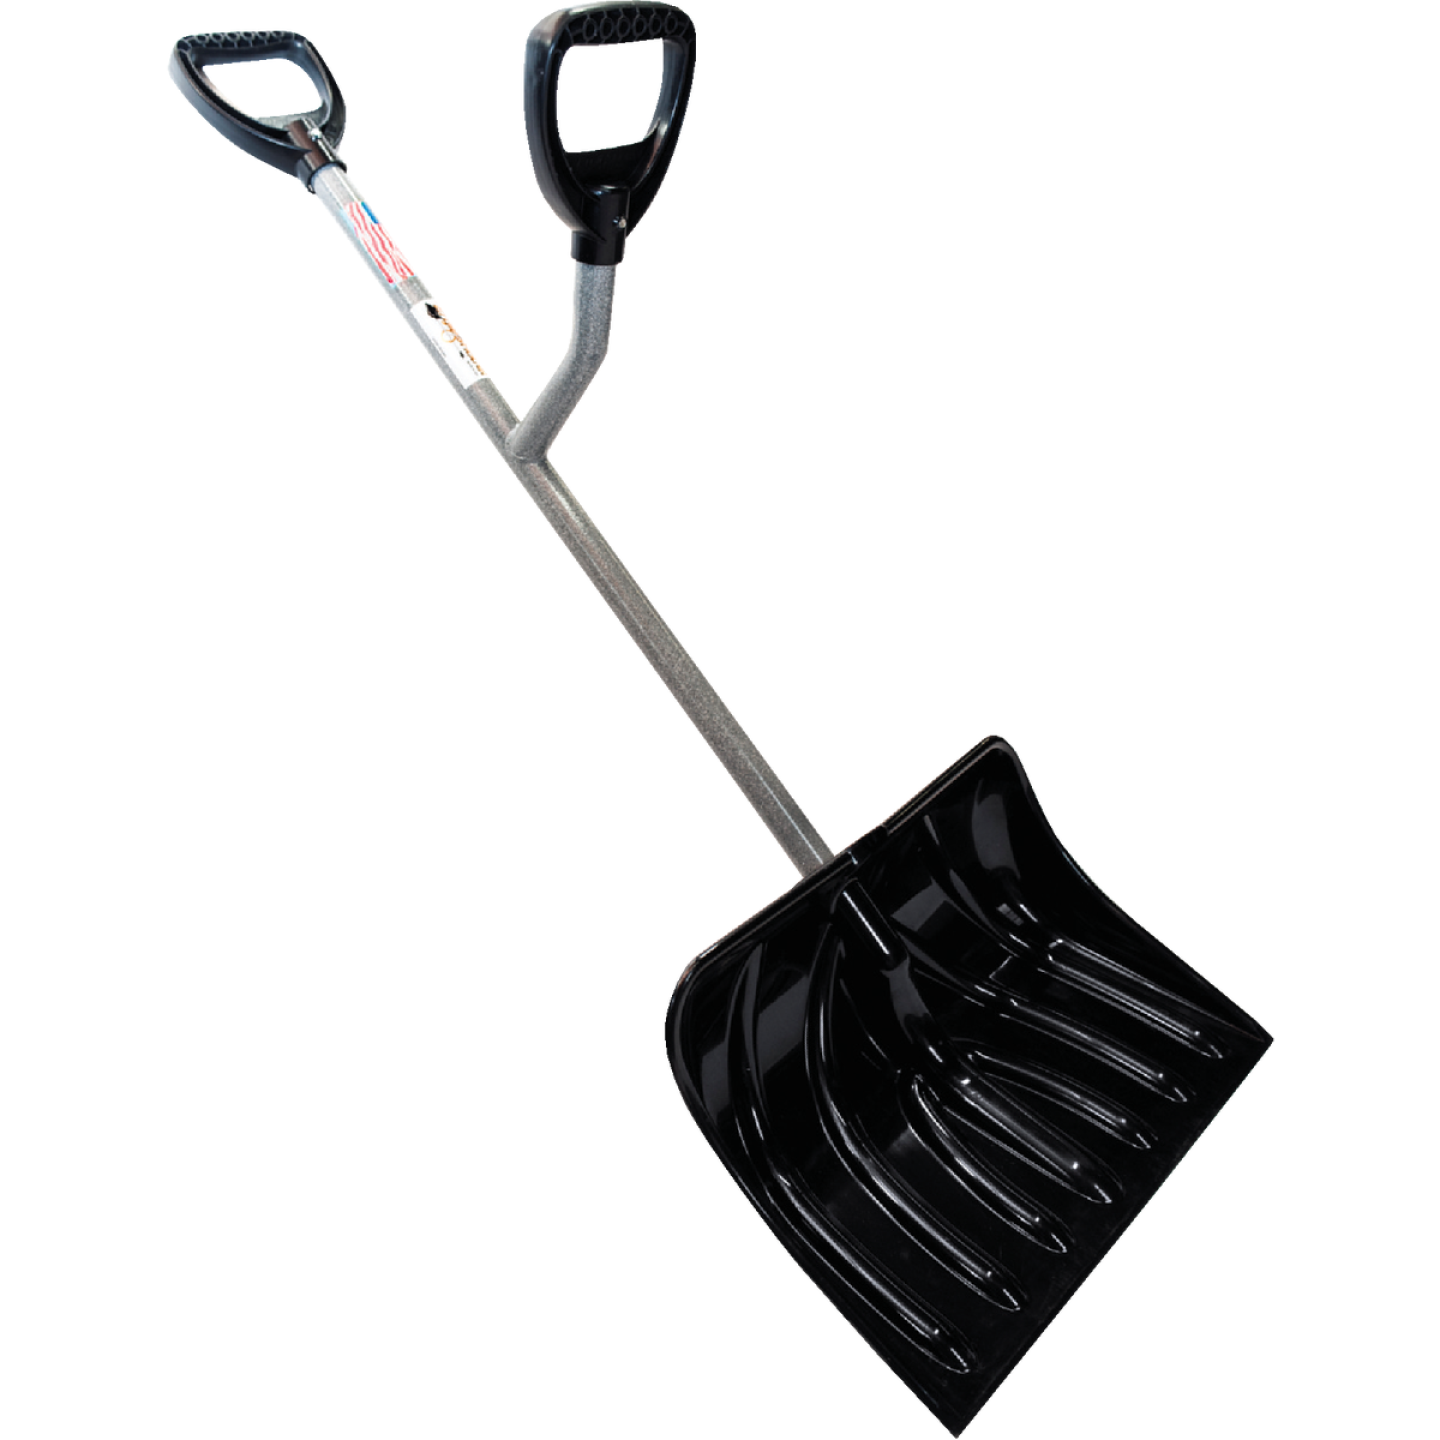 Ergieshovel 18 In. Poly Snow Shovel with 36.25 In. Steel Handle Image 1